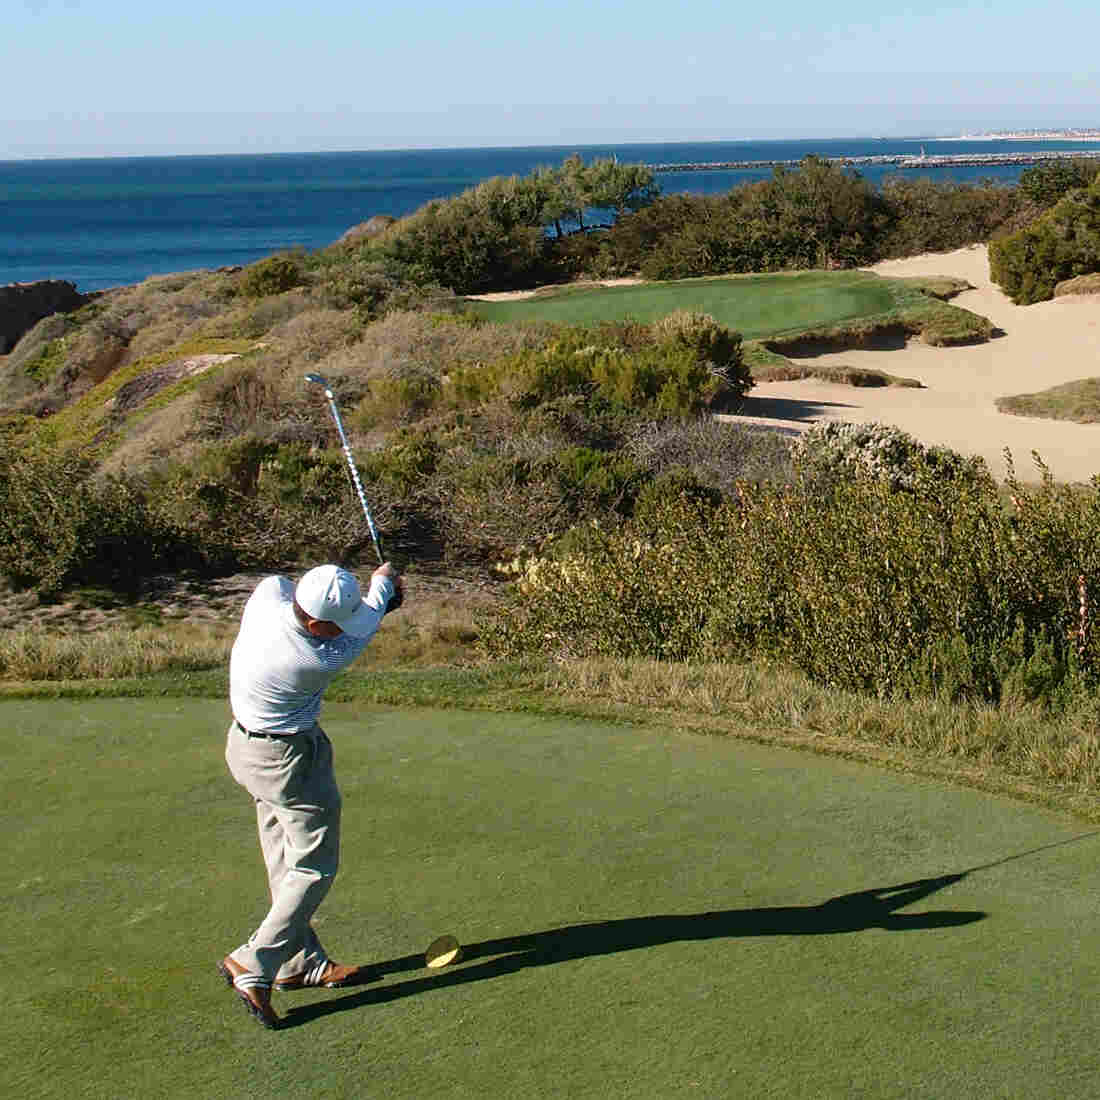 At the Pelican Hill golf resort in Newport Coast, Calif., water conservation is an obsession.